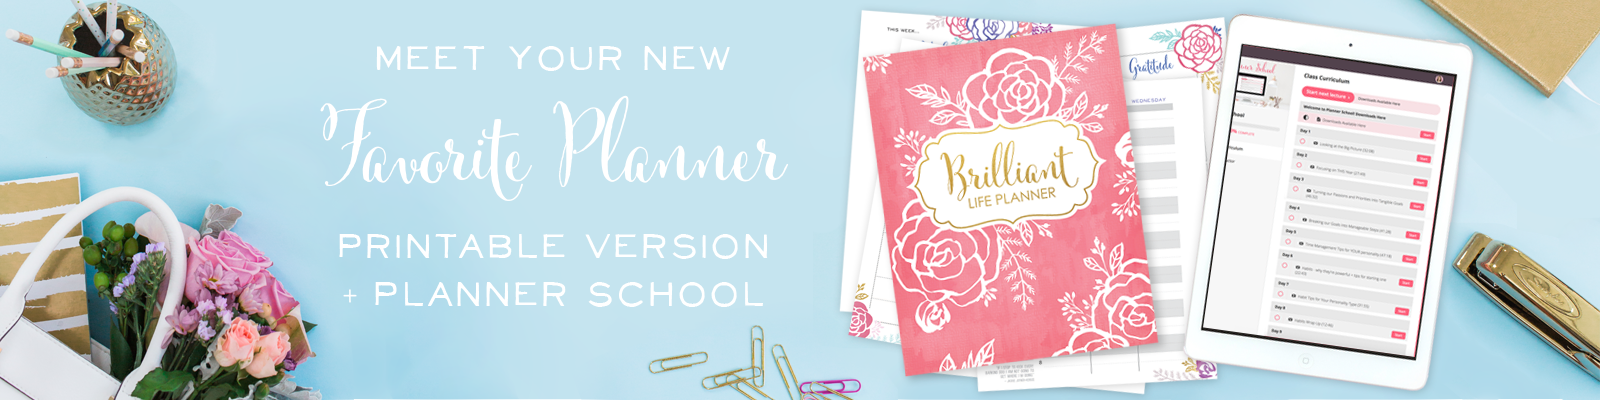 Printable Brilliant Life Planner + Planner School Video Course (and brilliant bonuses!)